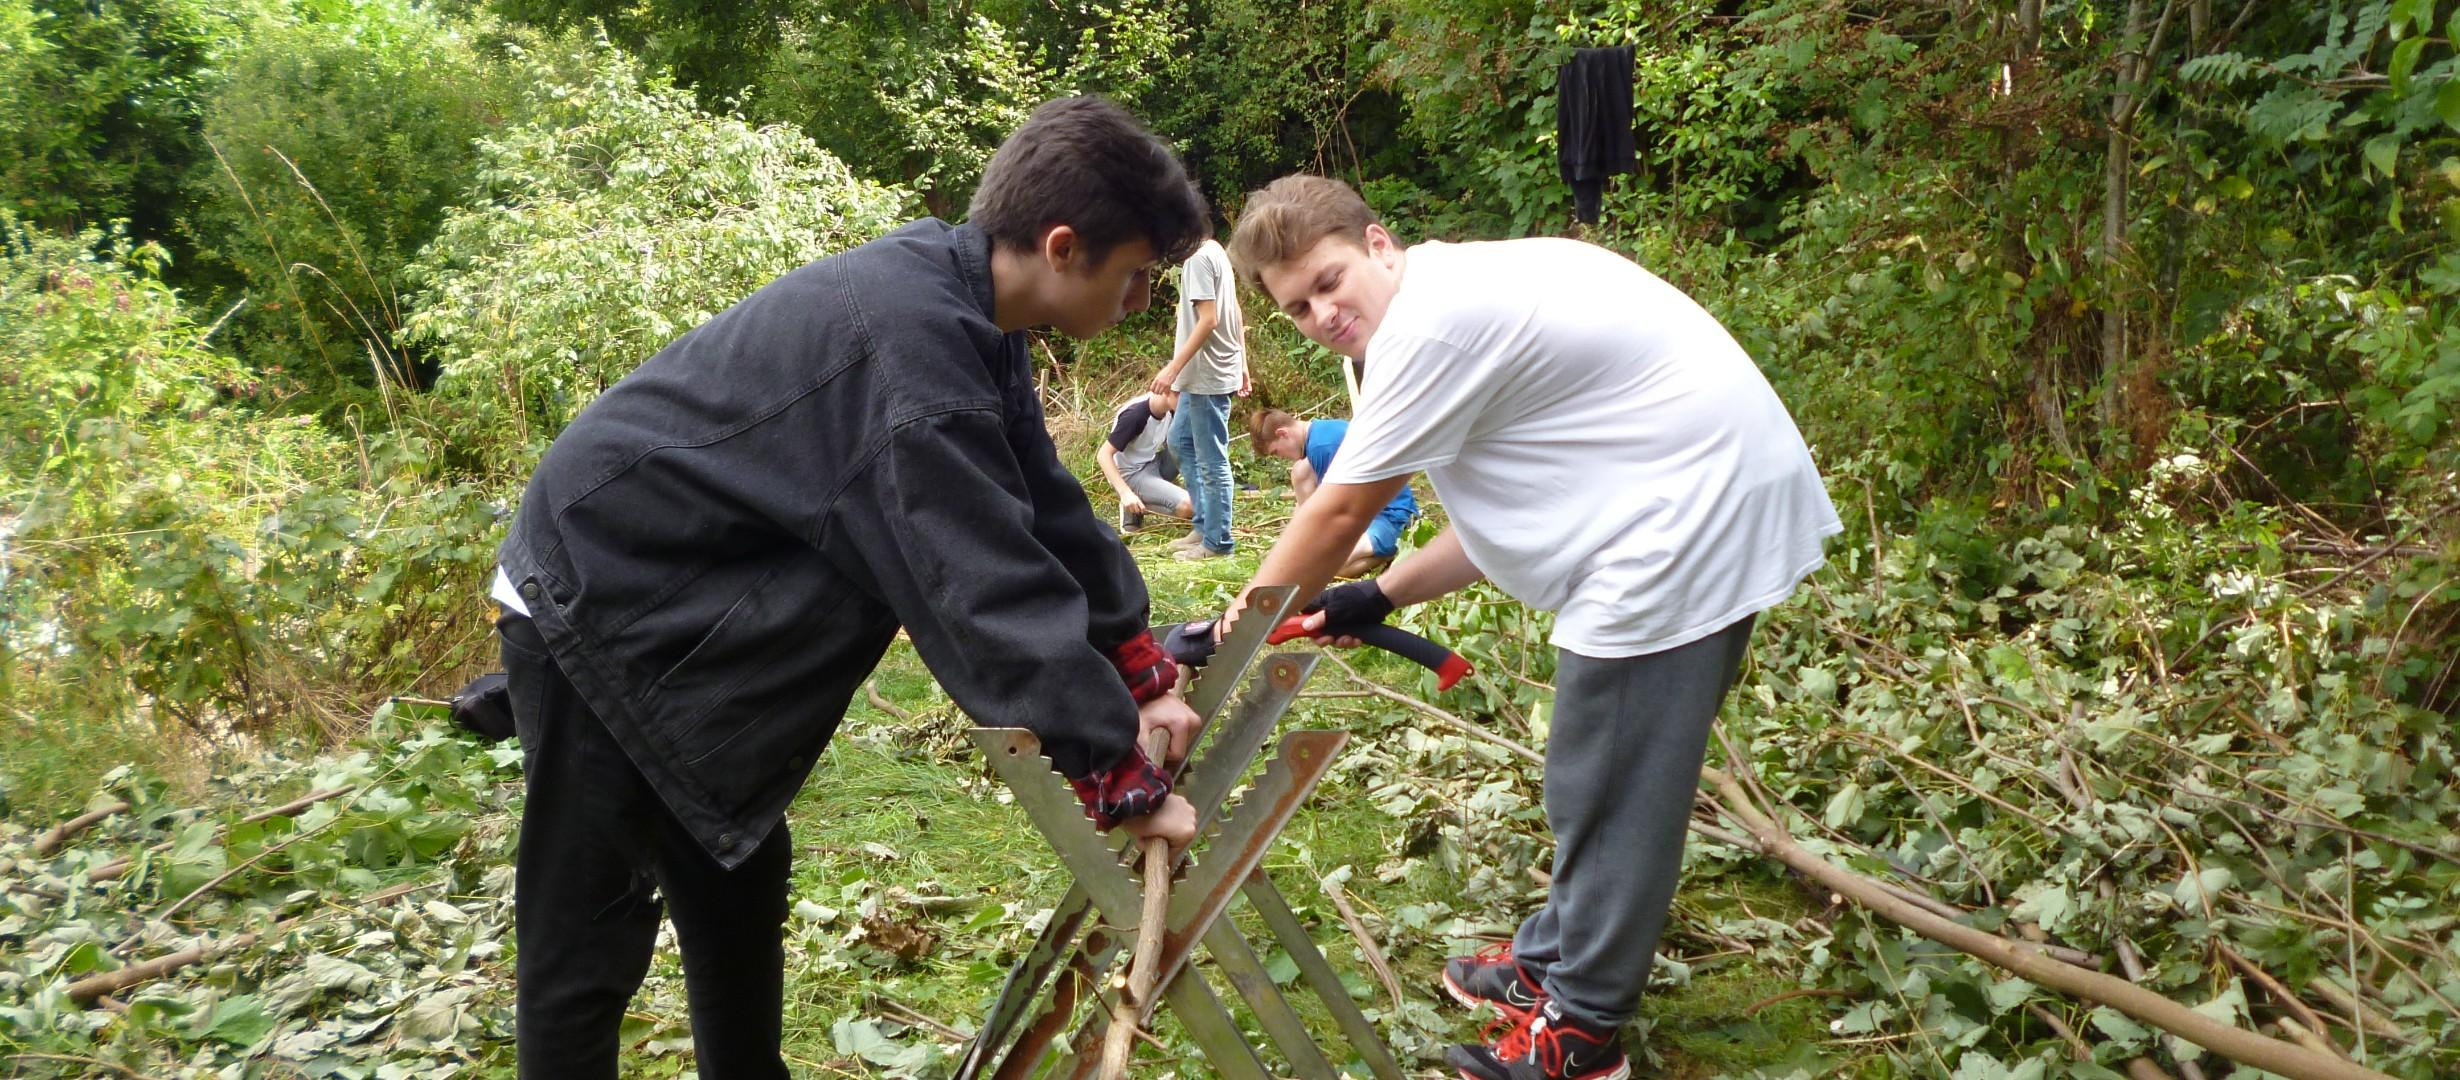 Two young people are holding a thin tree trunk on a metal structure in a woodland clearing